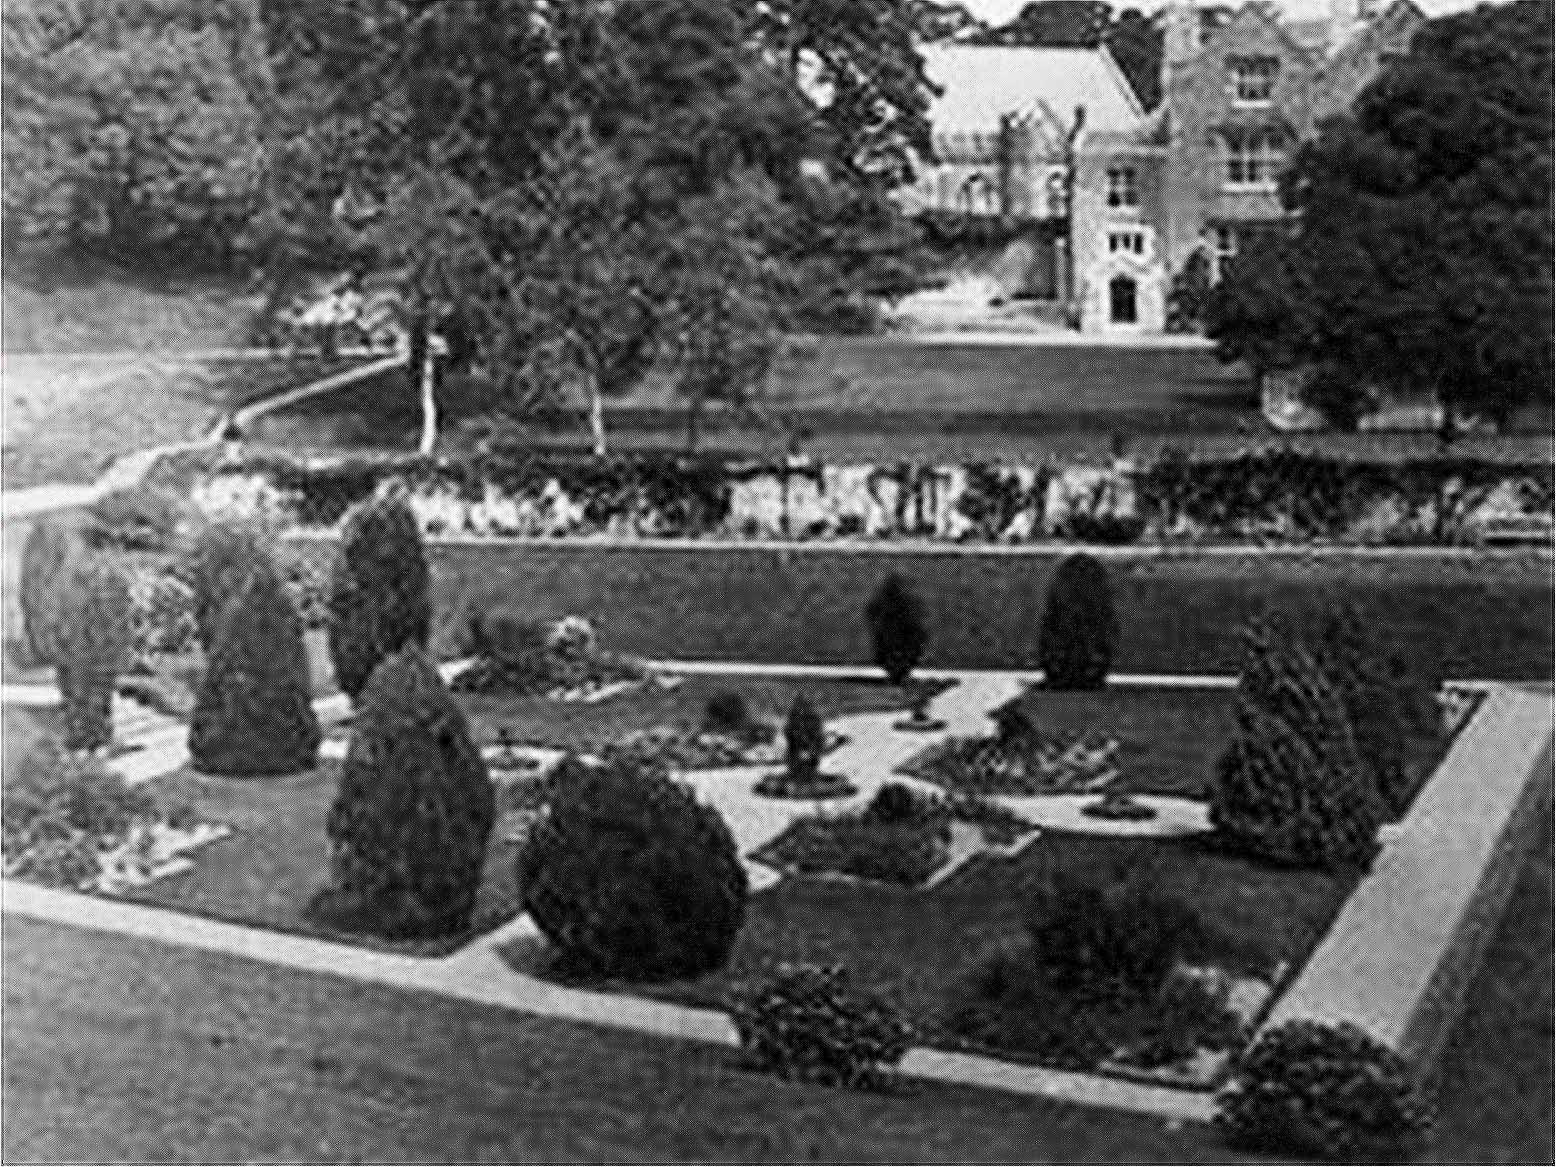 Dartington Hall's Tiltyard as Dutch Garden, date unknown